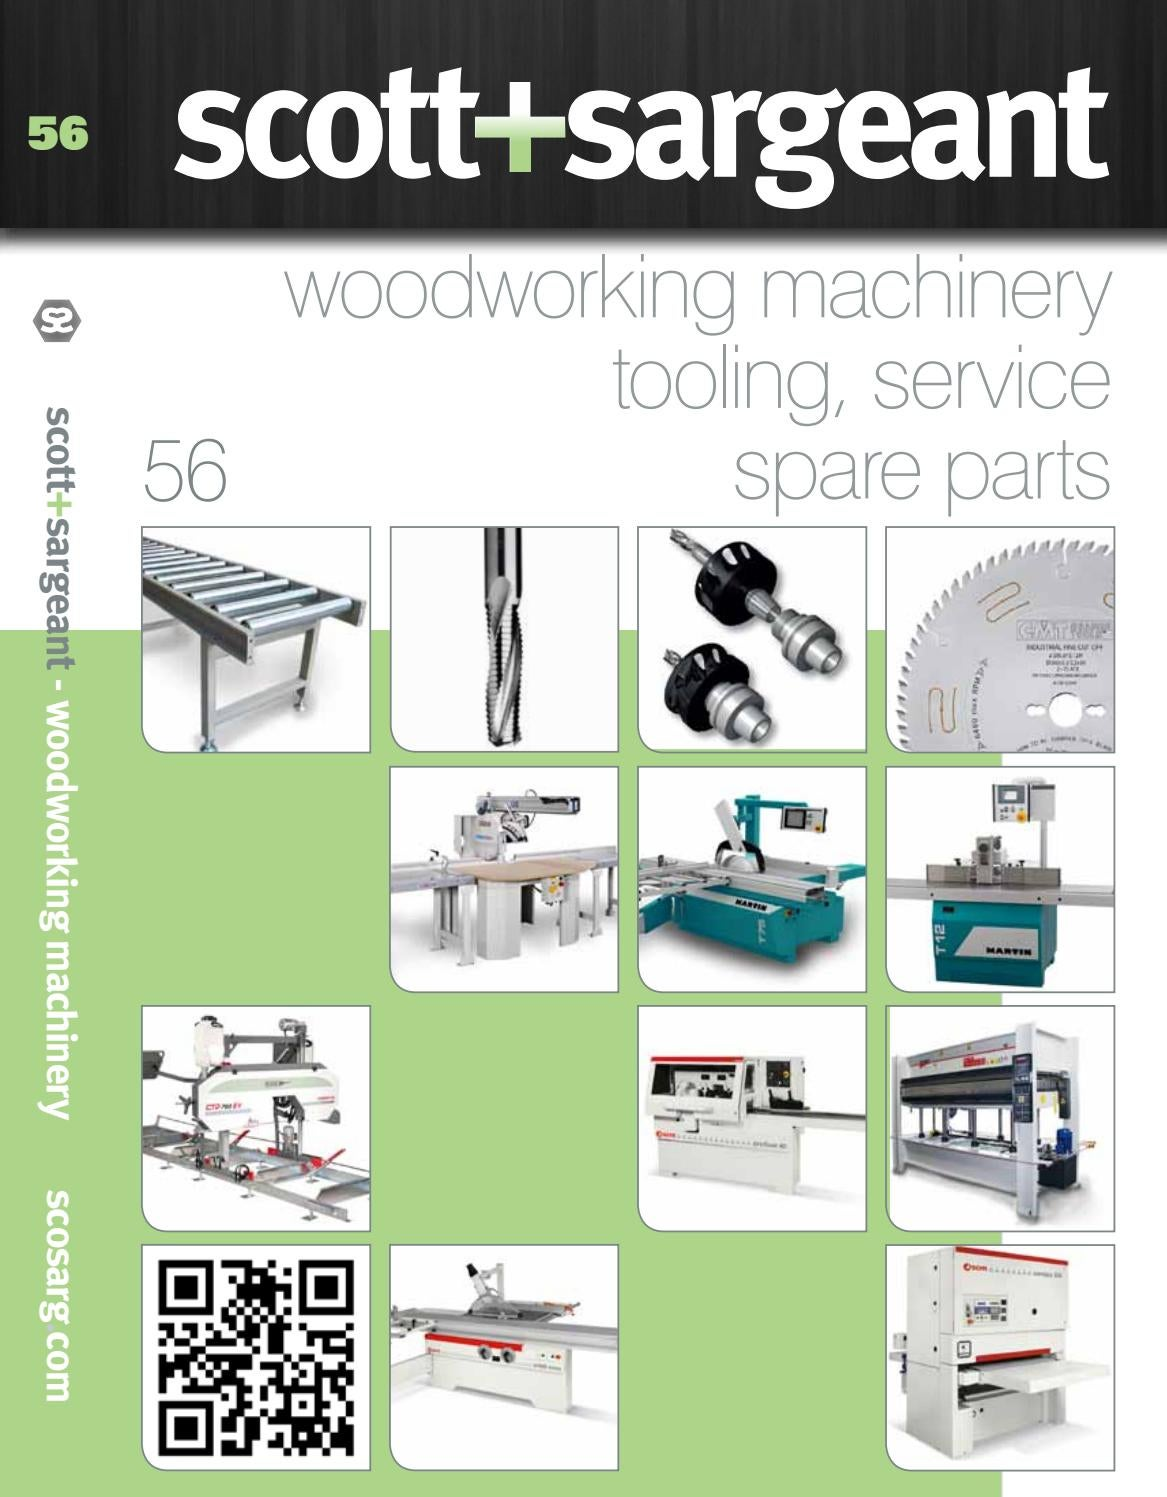 Scottsargeant woodworking machinery catalogue 56 by scottsargeant scottsargeant woodworking machinery catalogue 56 by scottsargeant woodworking machinery issuu fandeluxe Choice Image